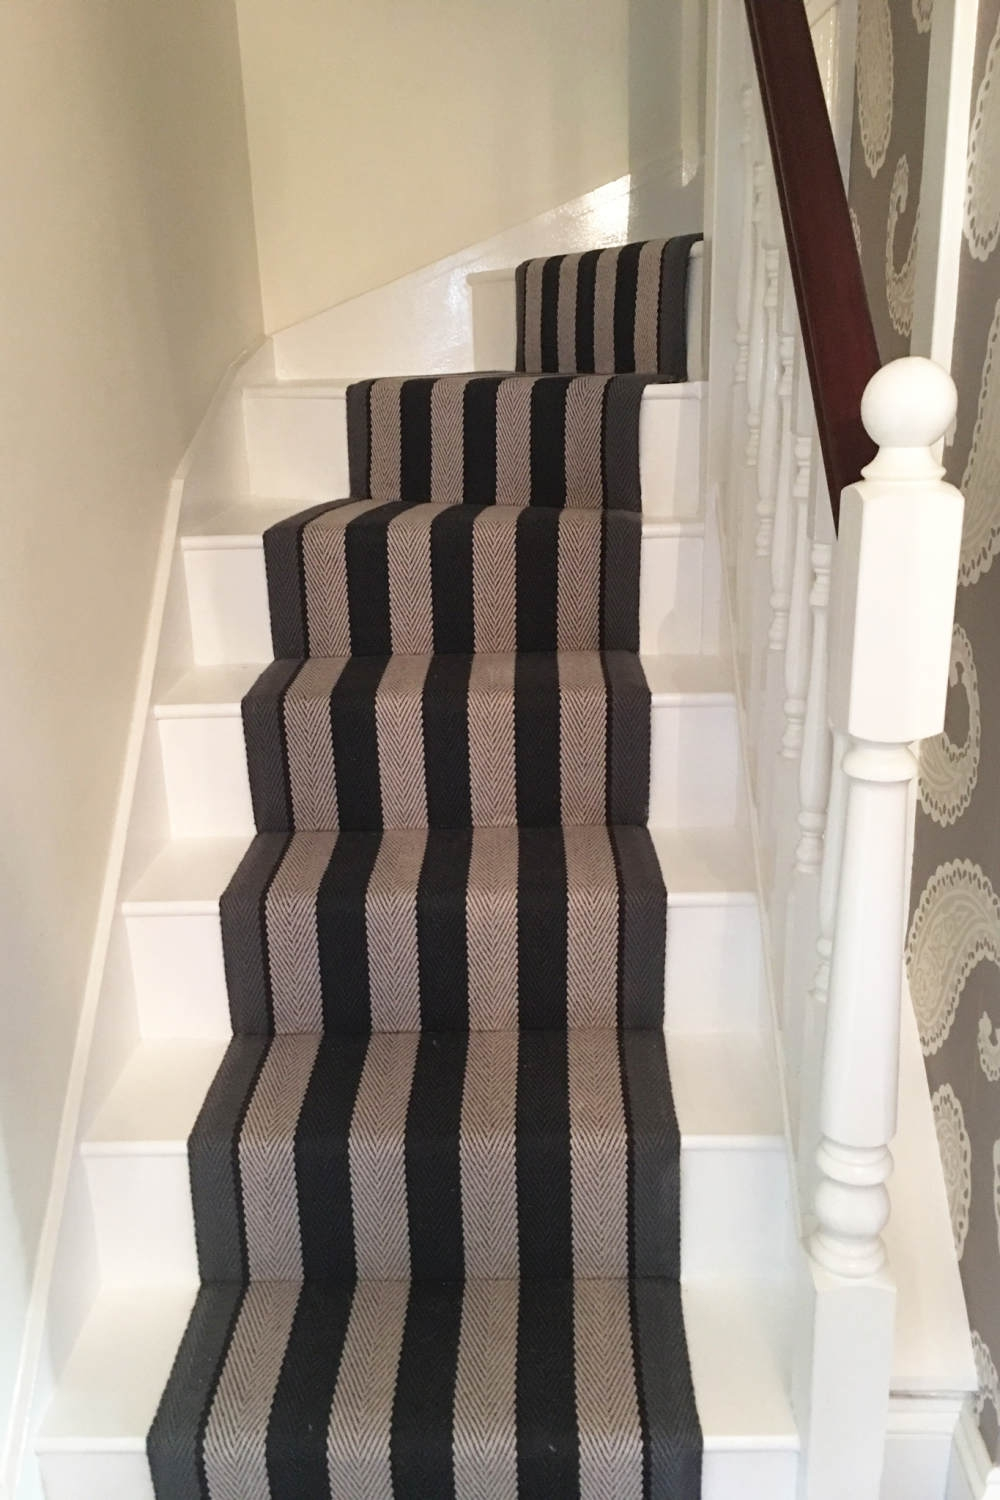 Inspiration Installation Gallery Fitzroy Black Roger Oates | Roger Oates Stair Runners | Middle | Hallway | Art Deco | Corner | Victorian